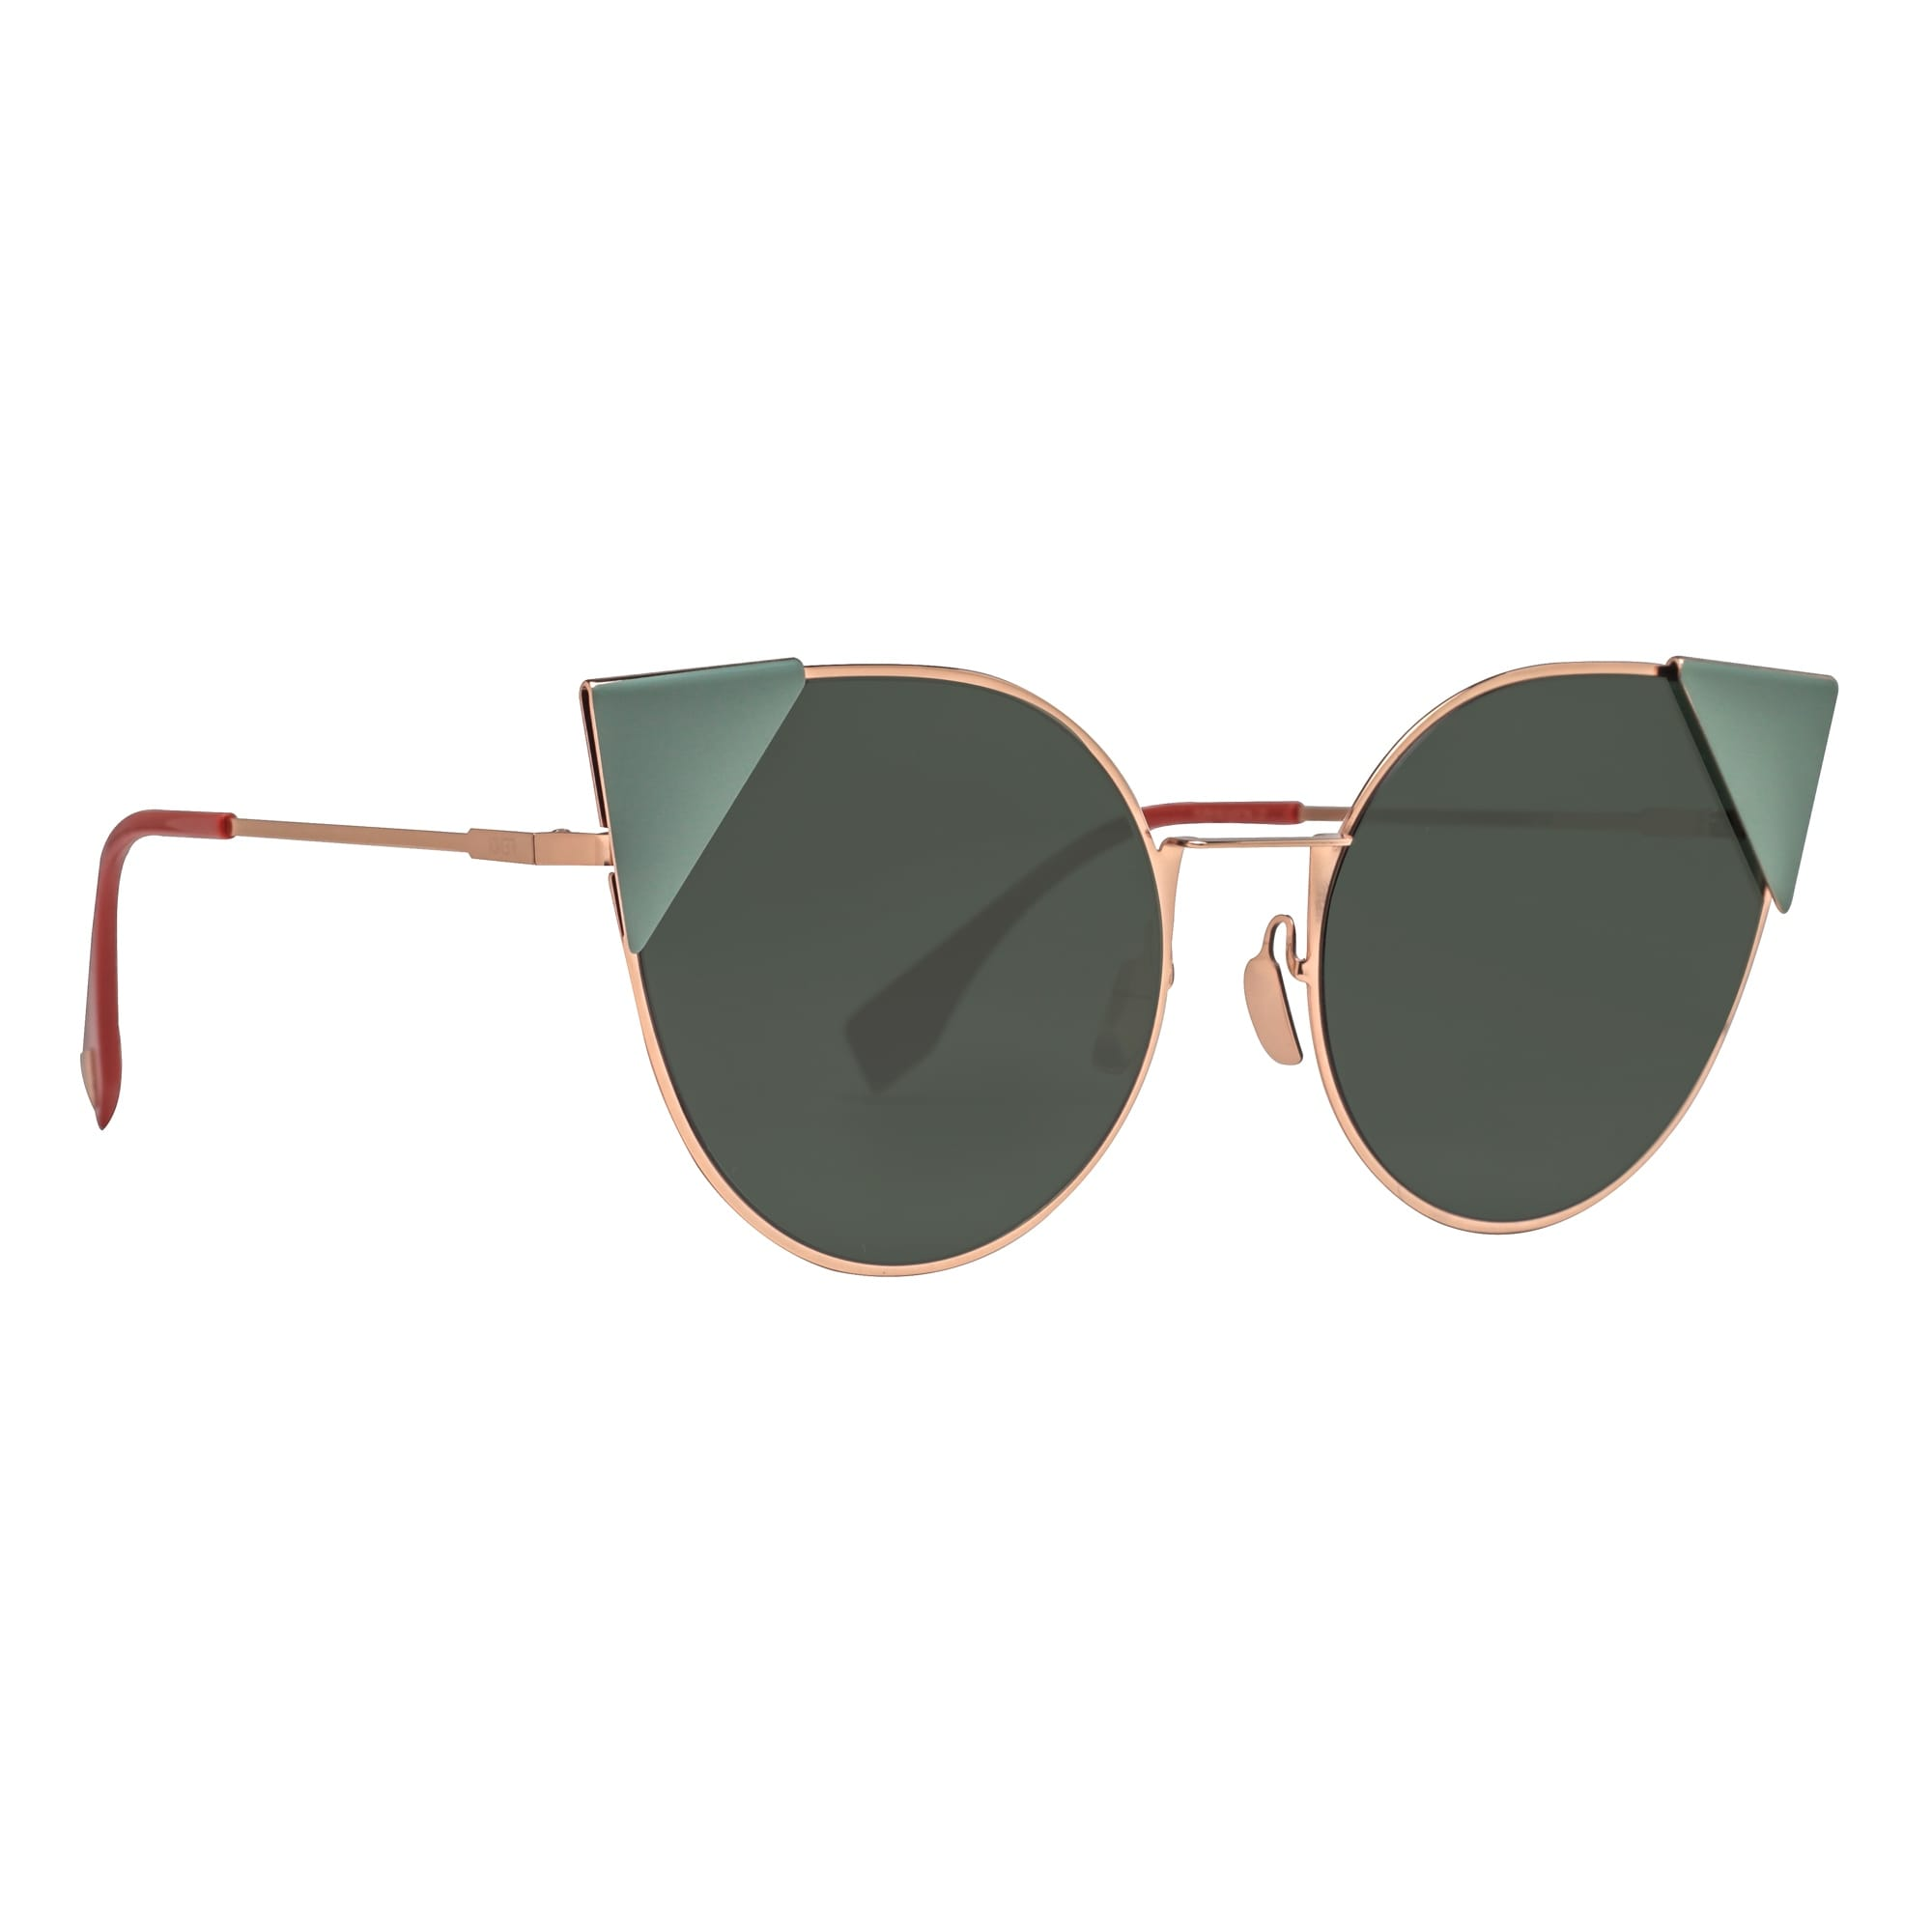 c9270da5ec Shop Fendi Lei FF 0190 S DDB07 Copper Gold Green Round Cat Eye Sunglasses -  gold copper - 57mm-19mm-140mm - Free Shipping Today - Overstock - 18656415